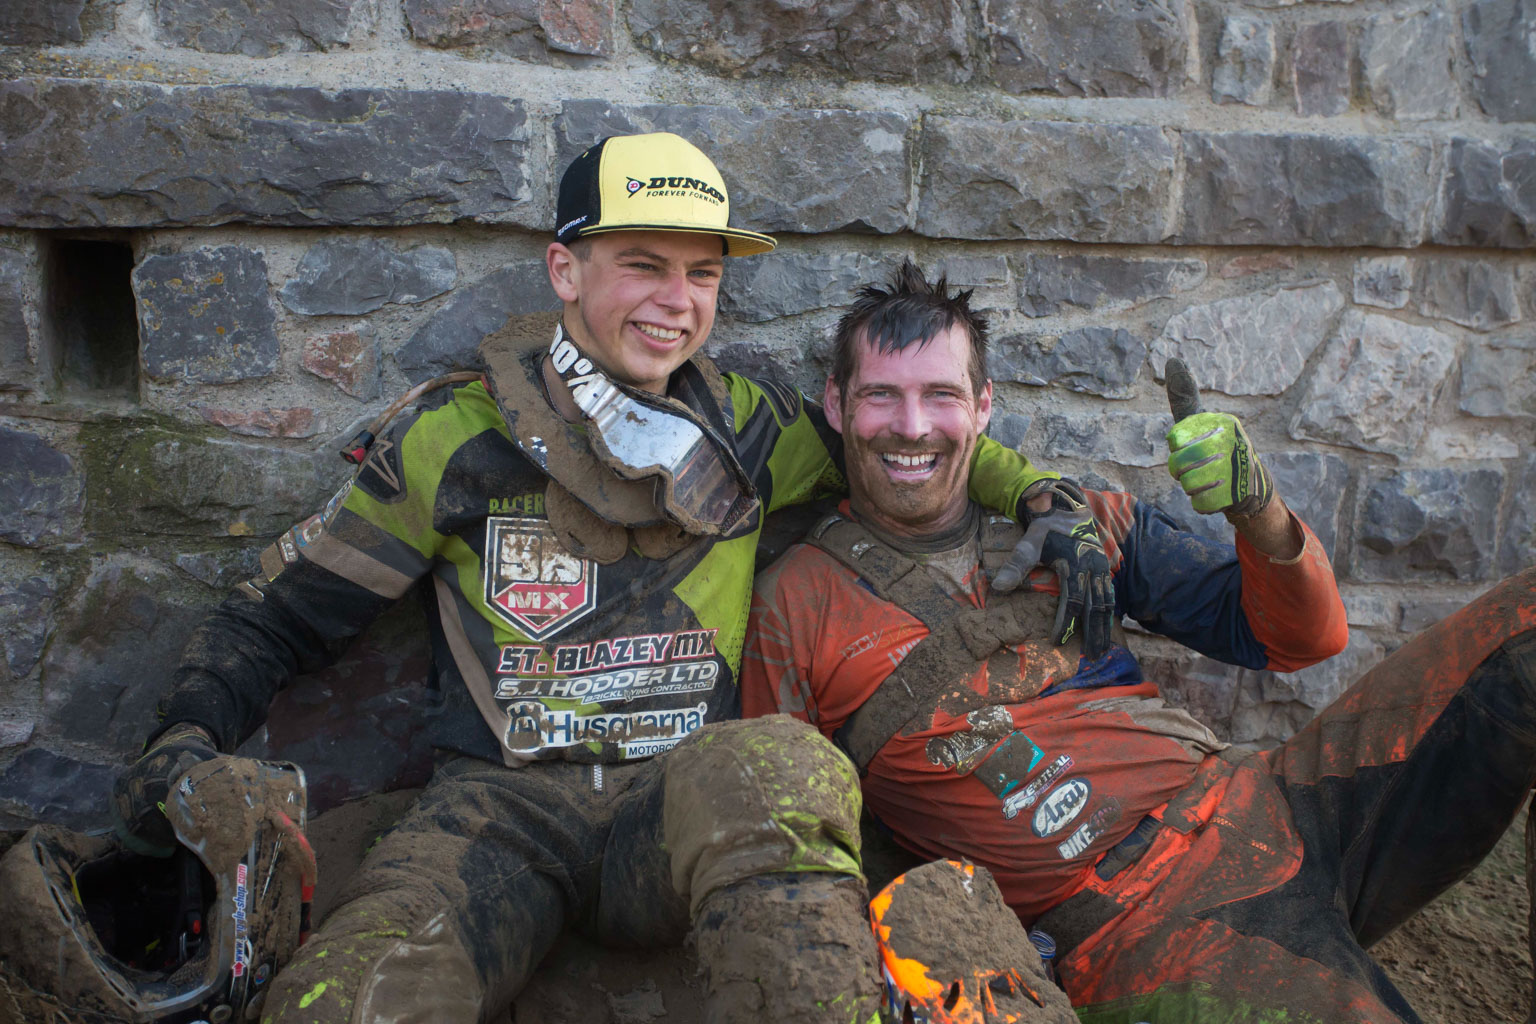 Todd Kellett (St Blazey Husqvarna) and David Knight (KTM) went one-two